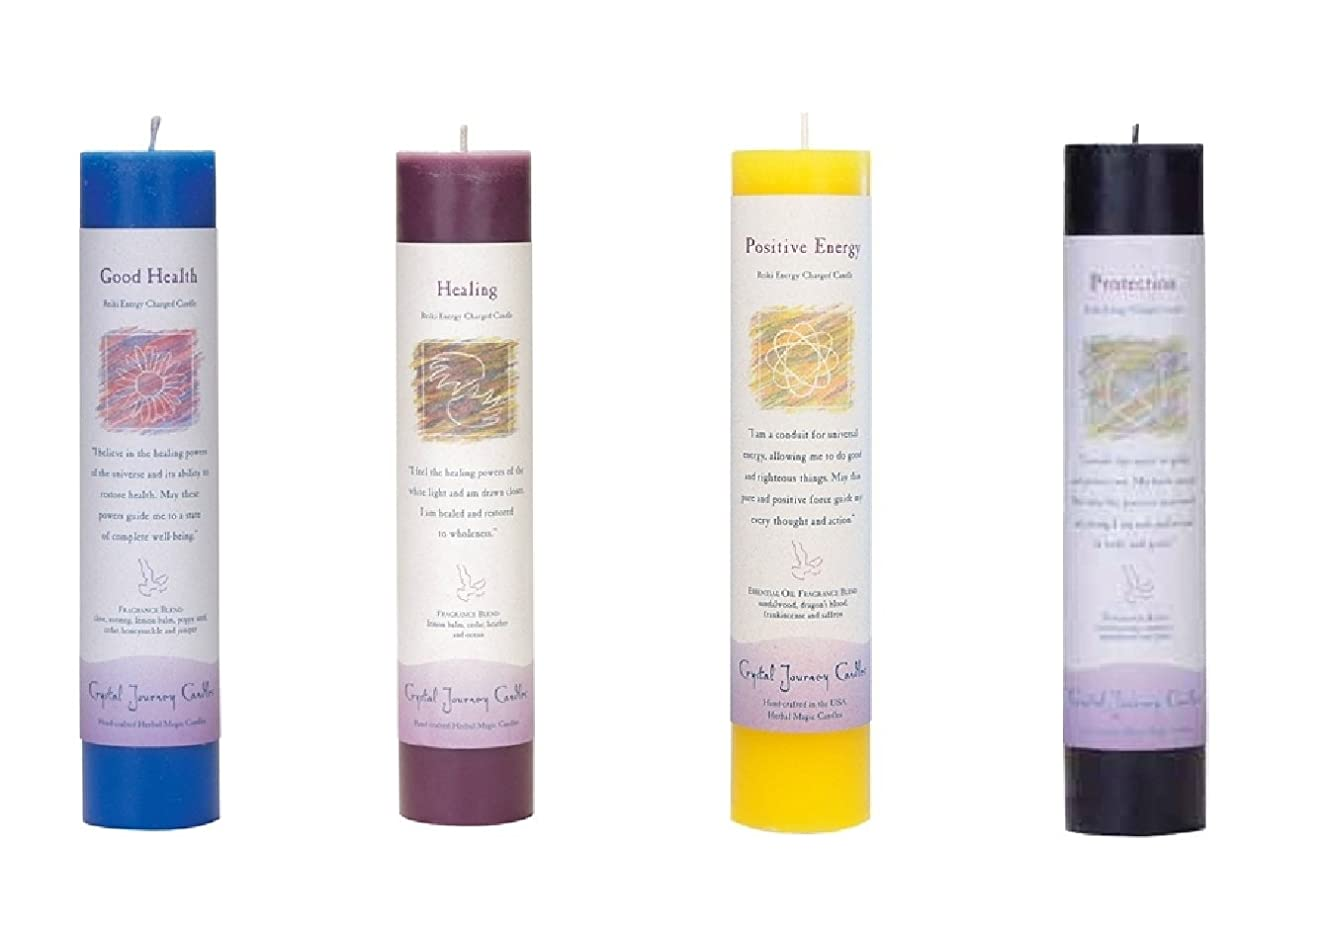 (Good Health, Healing, Positive Energy, Protection) - Crystal Journey Reiki Charged Herbal Magic Pillar Candle Bundle (Good Health, Healing, Positive Energy, Protection)